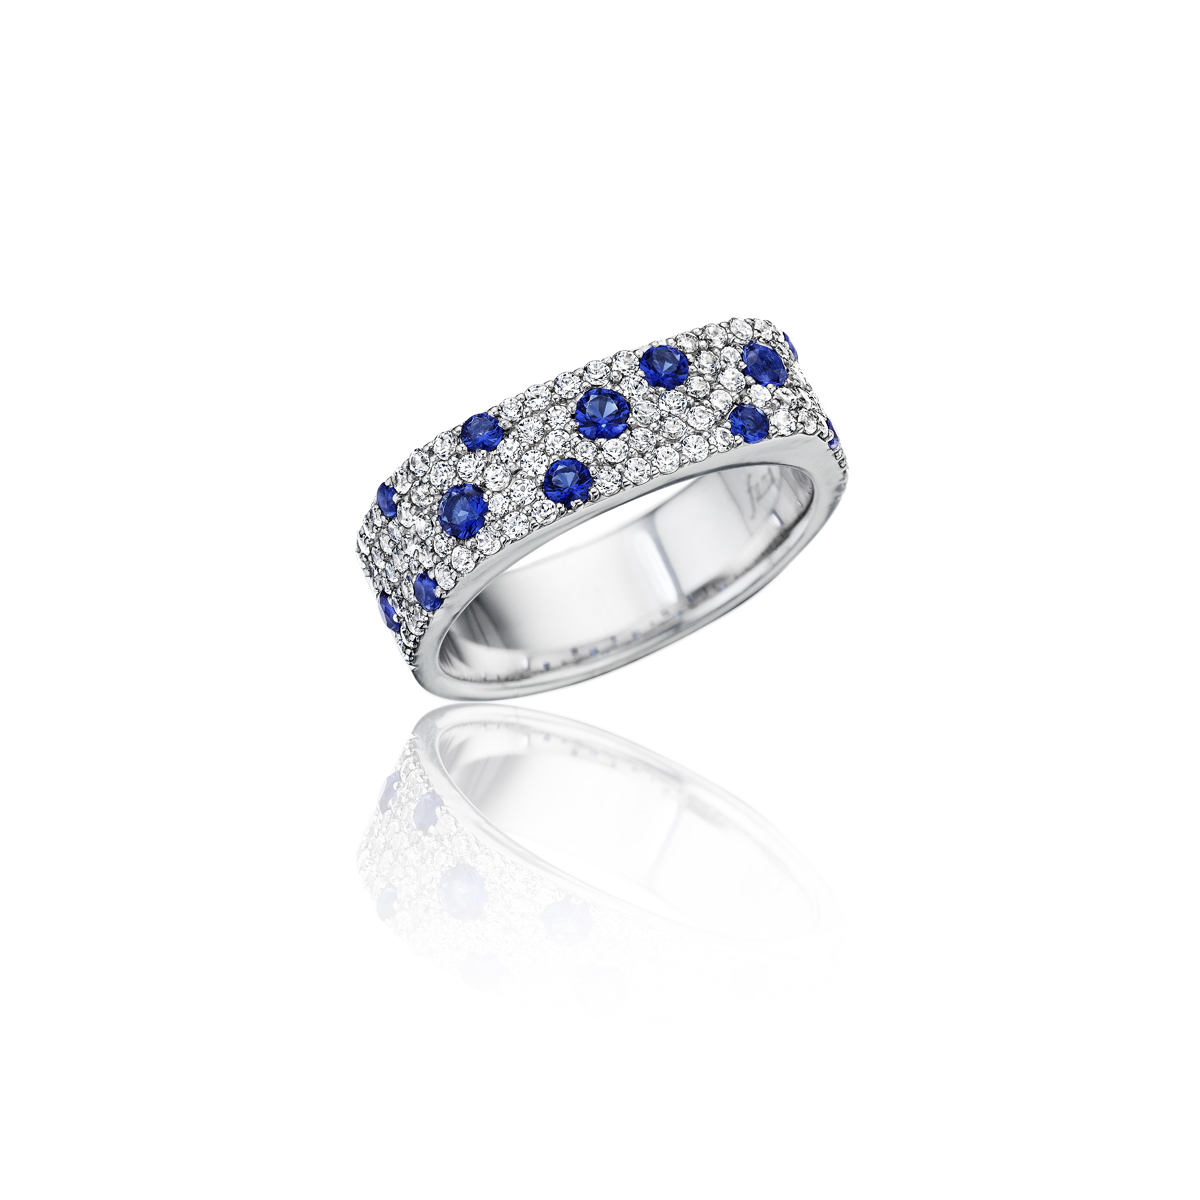 Under the Stars Sapphire-Speckled Diamond Ring - This under the stars sapphire-speckled diamond ring comes in a variety of material types like 14k white gold, yellow gold, rose gold and can be customized with your jeweler. Fana diamond earrings are perfect for that special woman in your life.